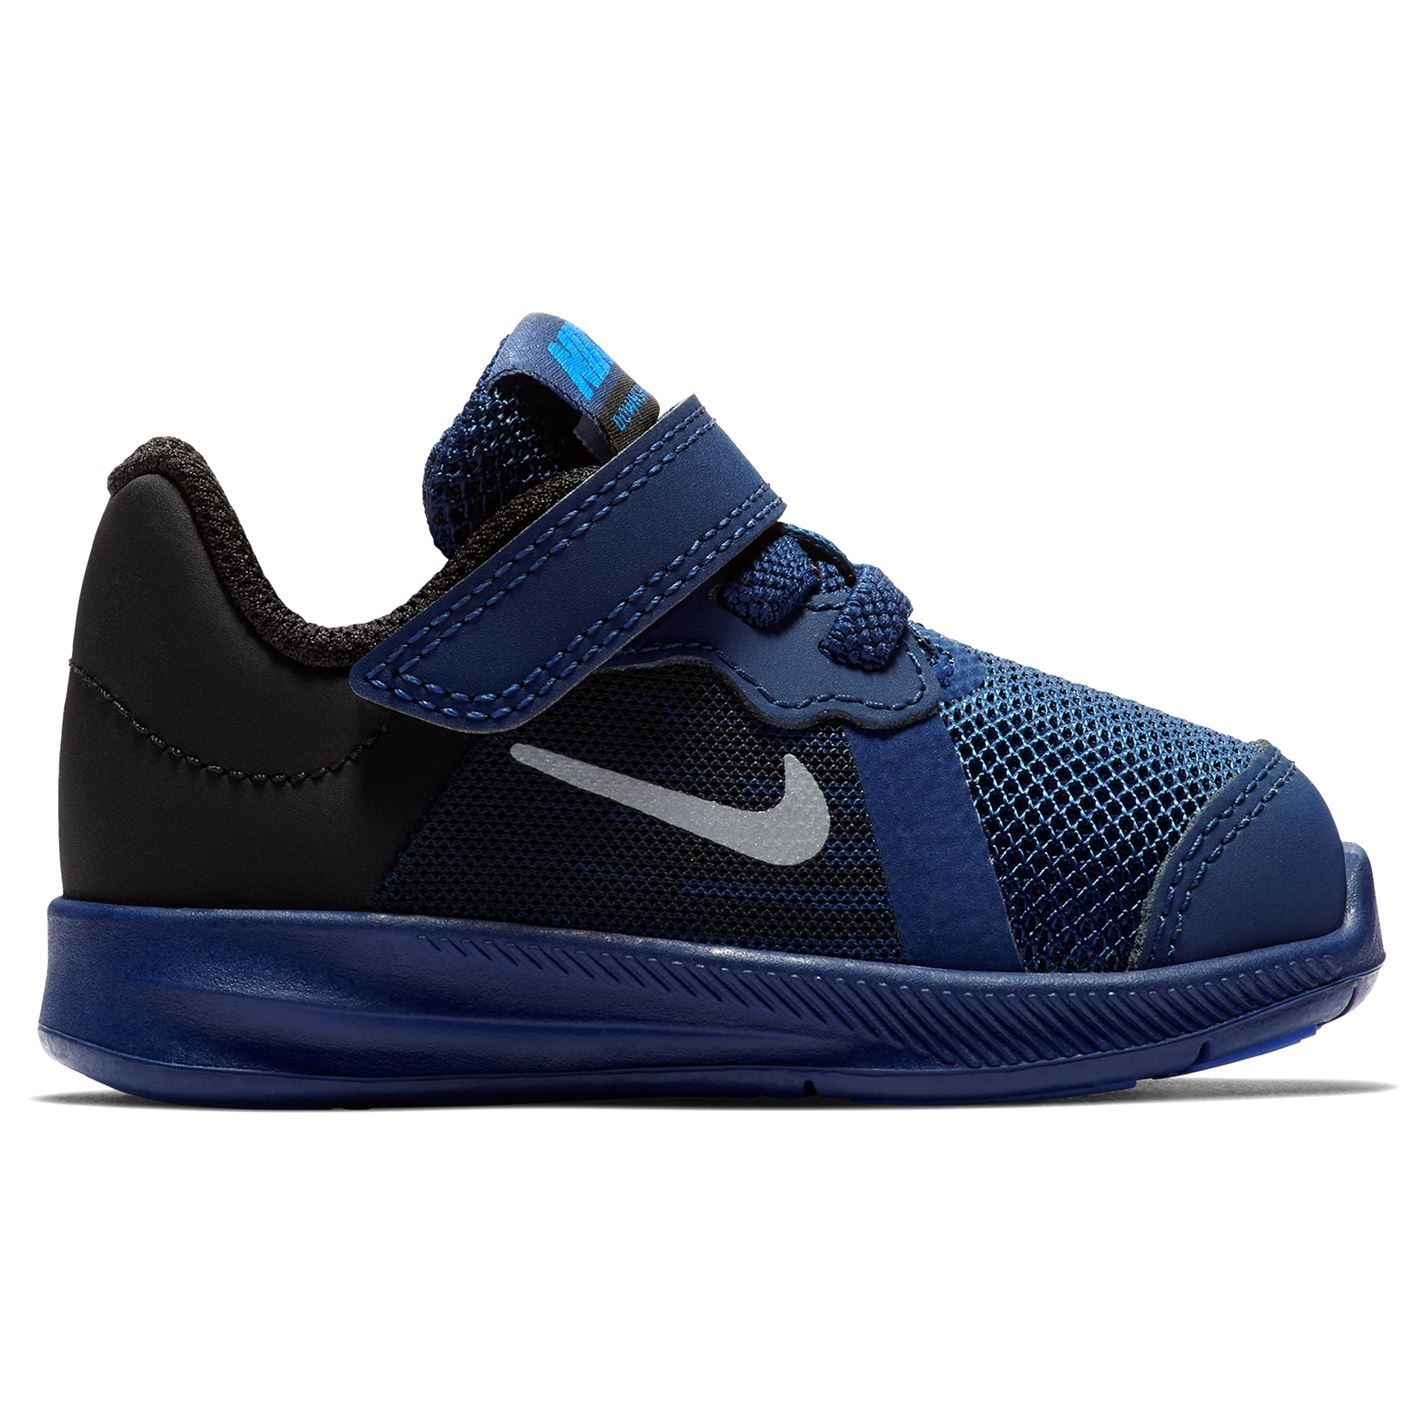 best website dca80 d539d ... Nike Downshifter 8 Infants Trainers Boys BlueSilver Shoes Footwear